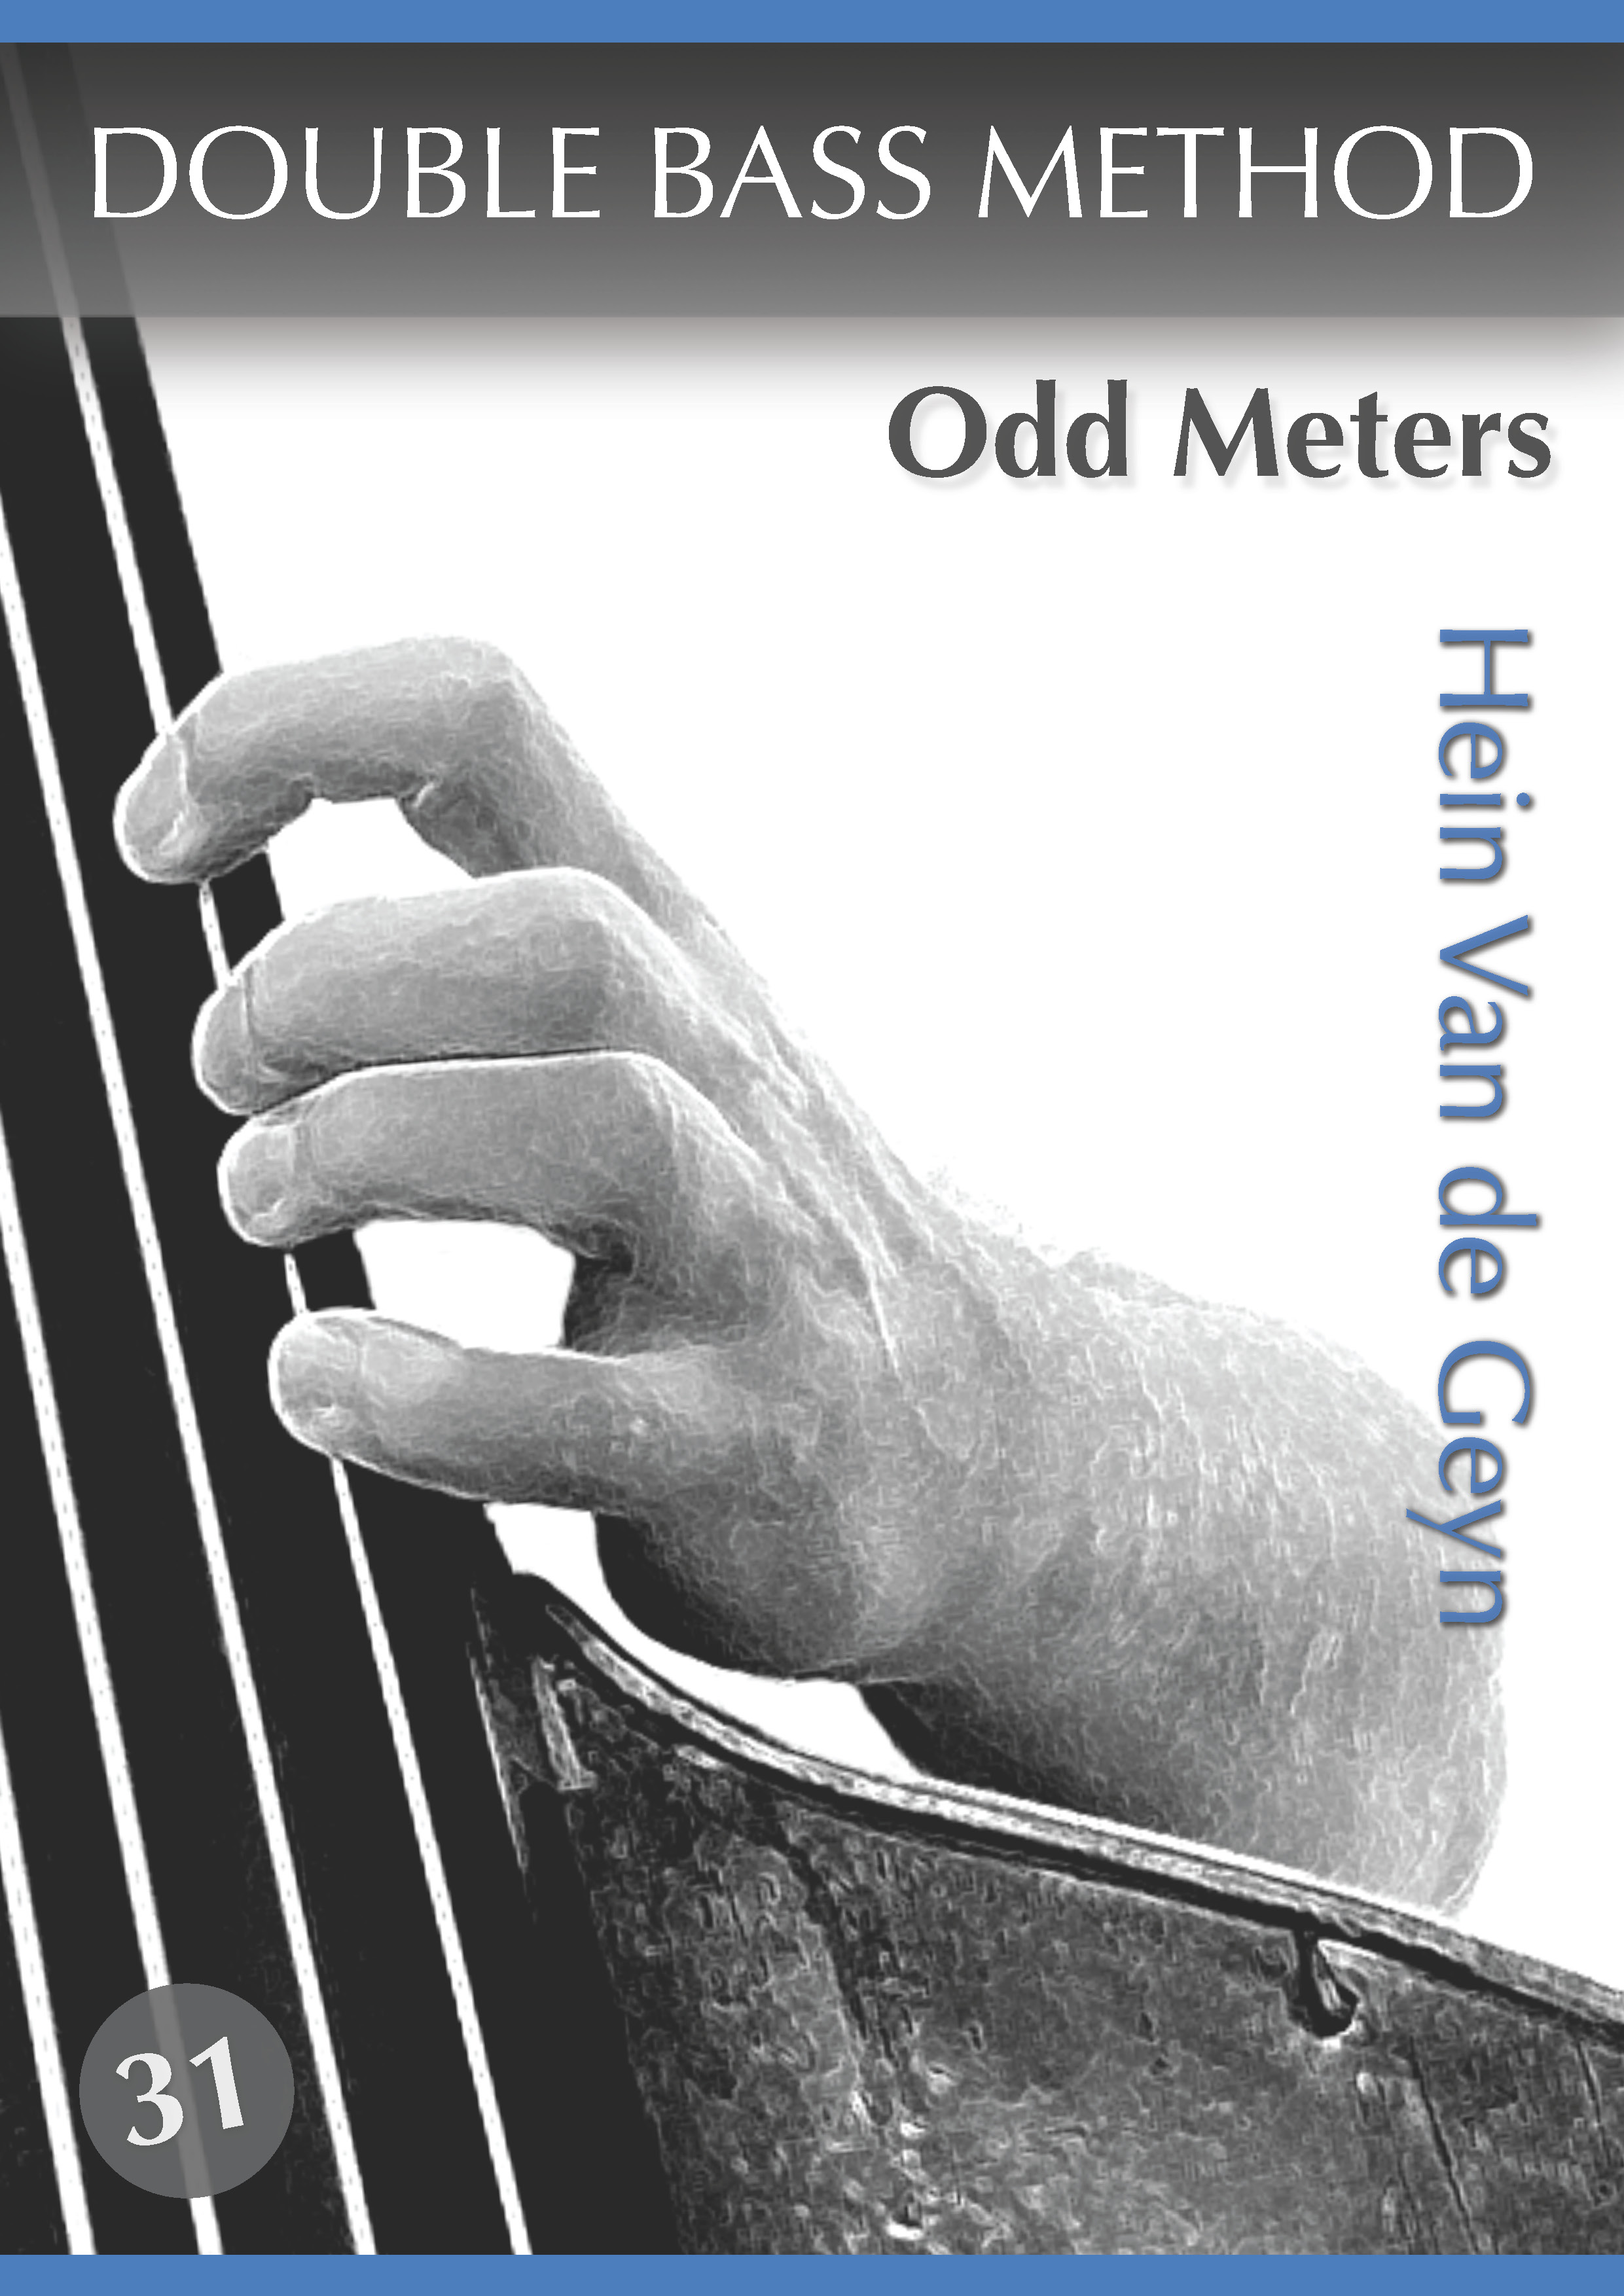 Odd Meters - Hein Van de Geyn - Double Bass Method